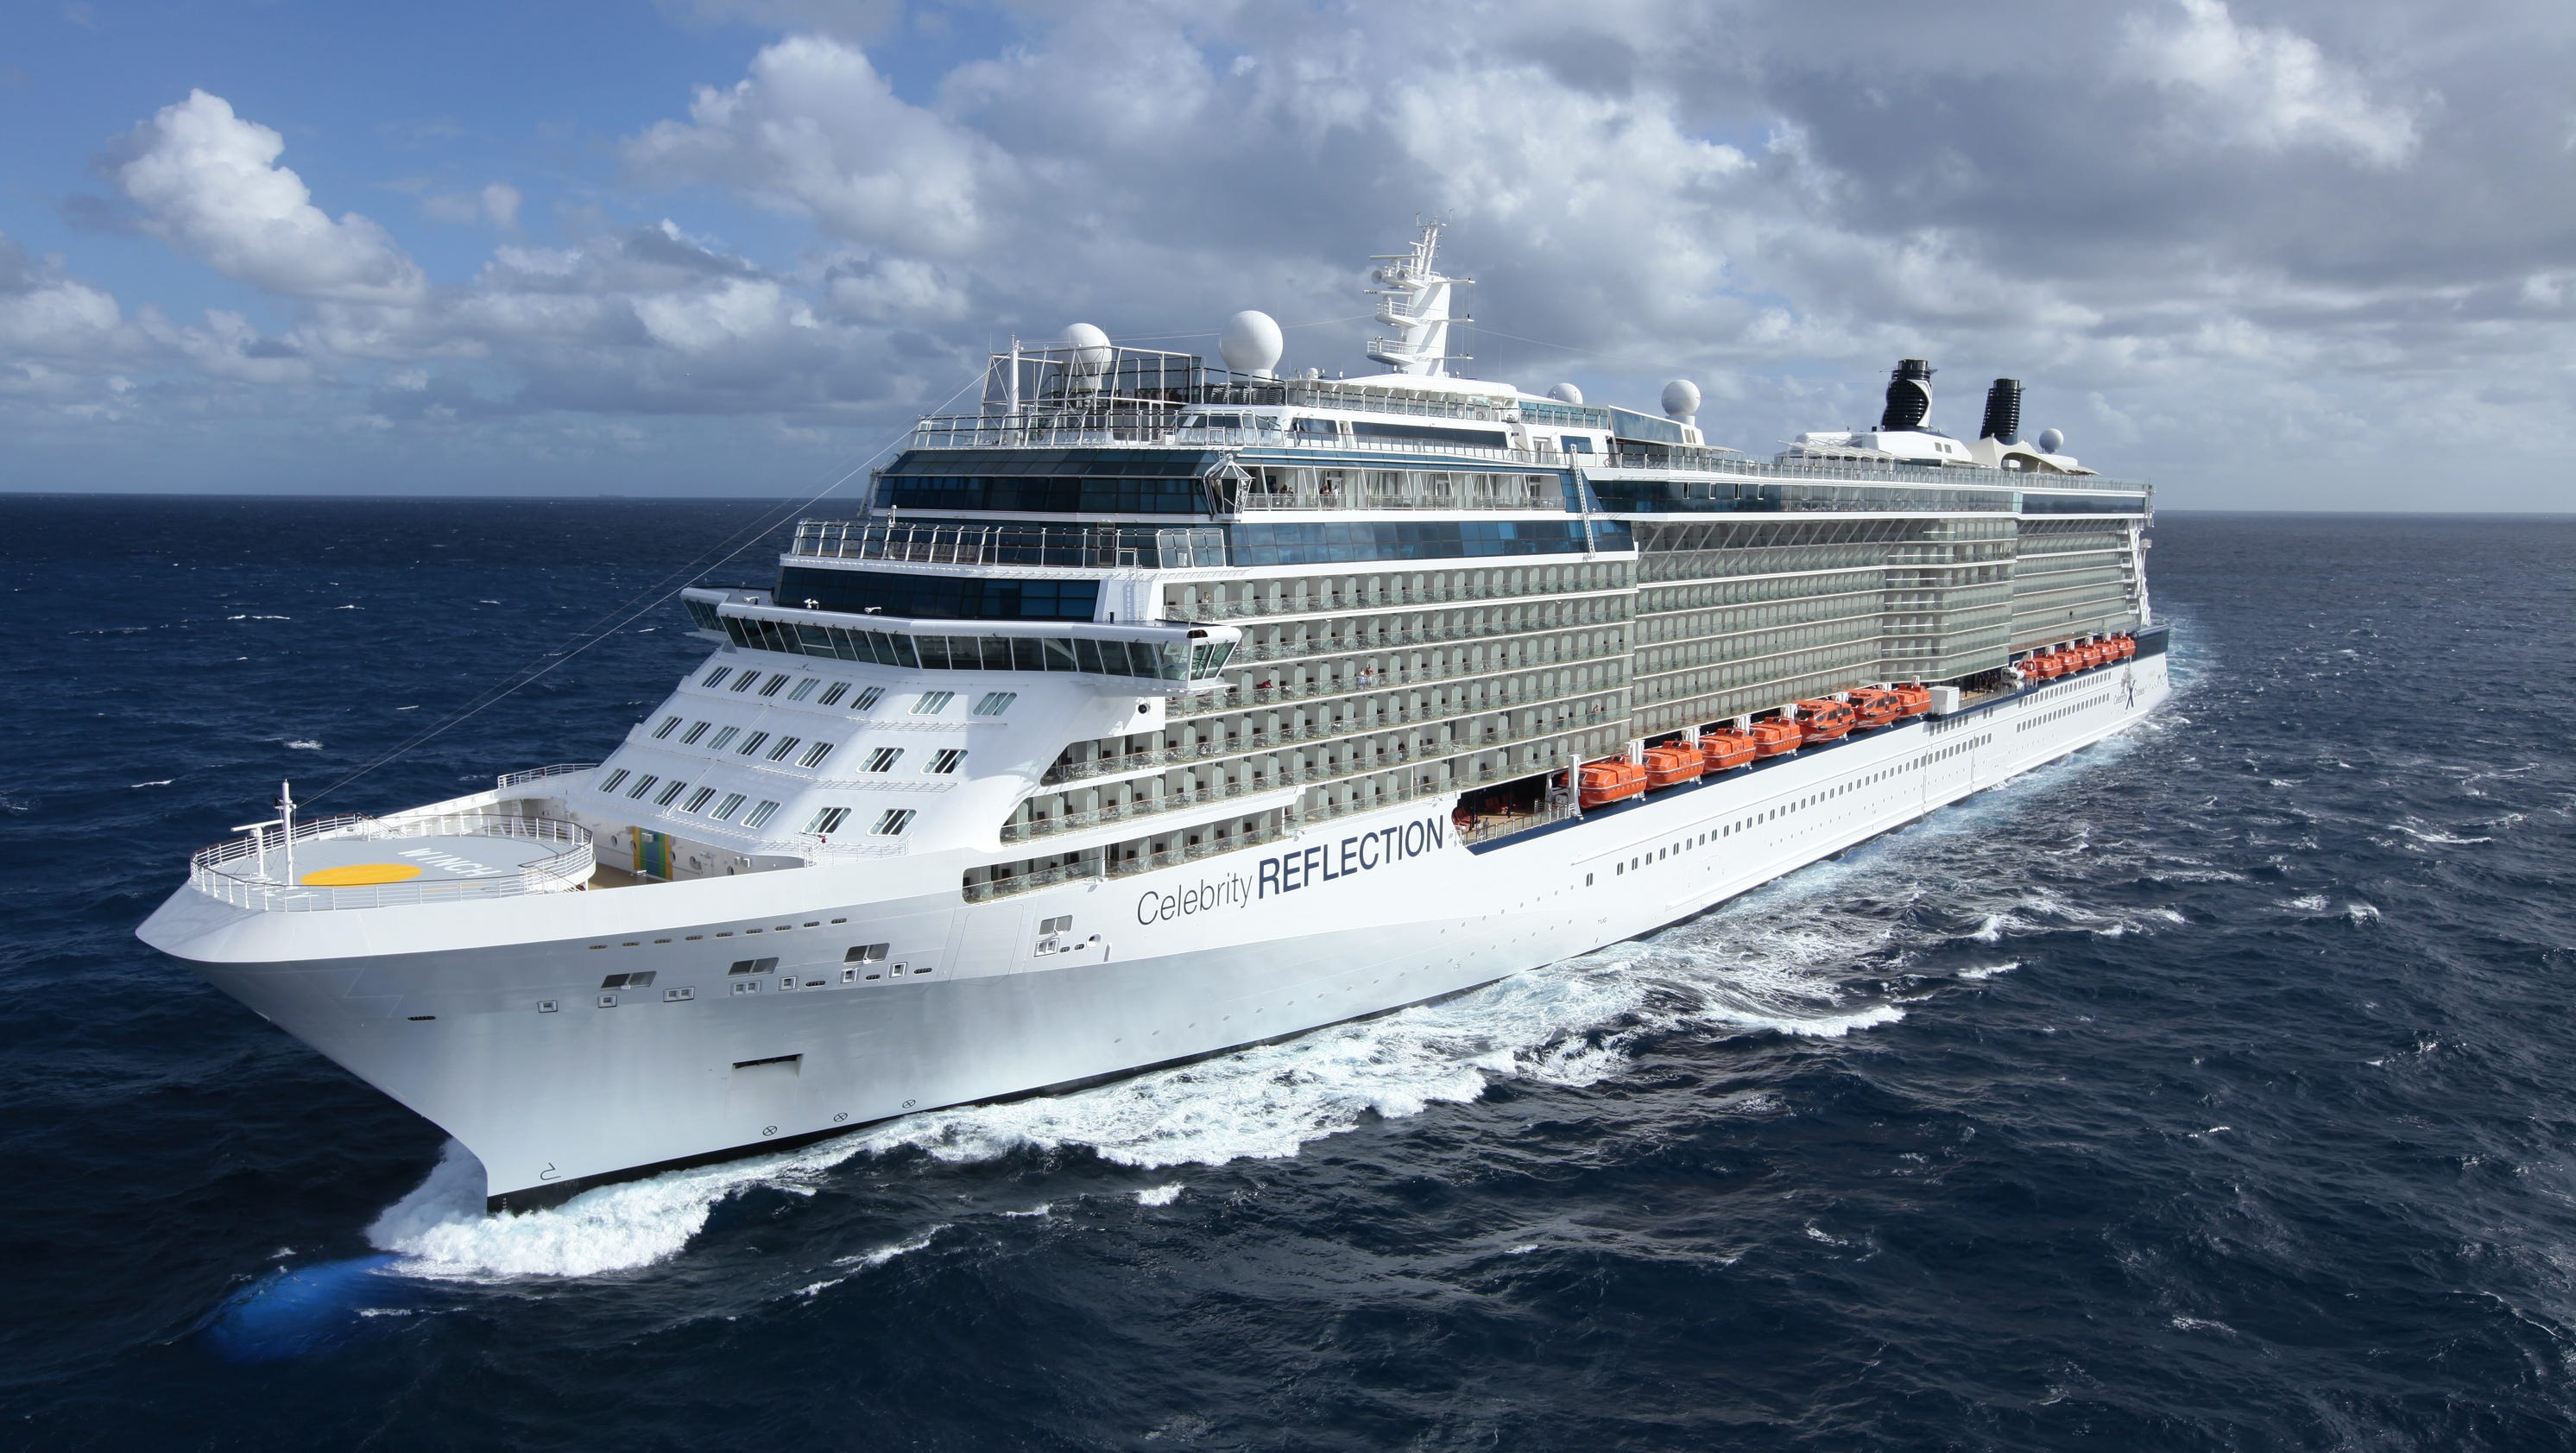 Five day cruise - Celebrity Infinity Review - Cruise Critic